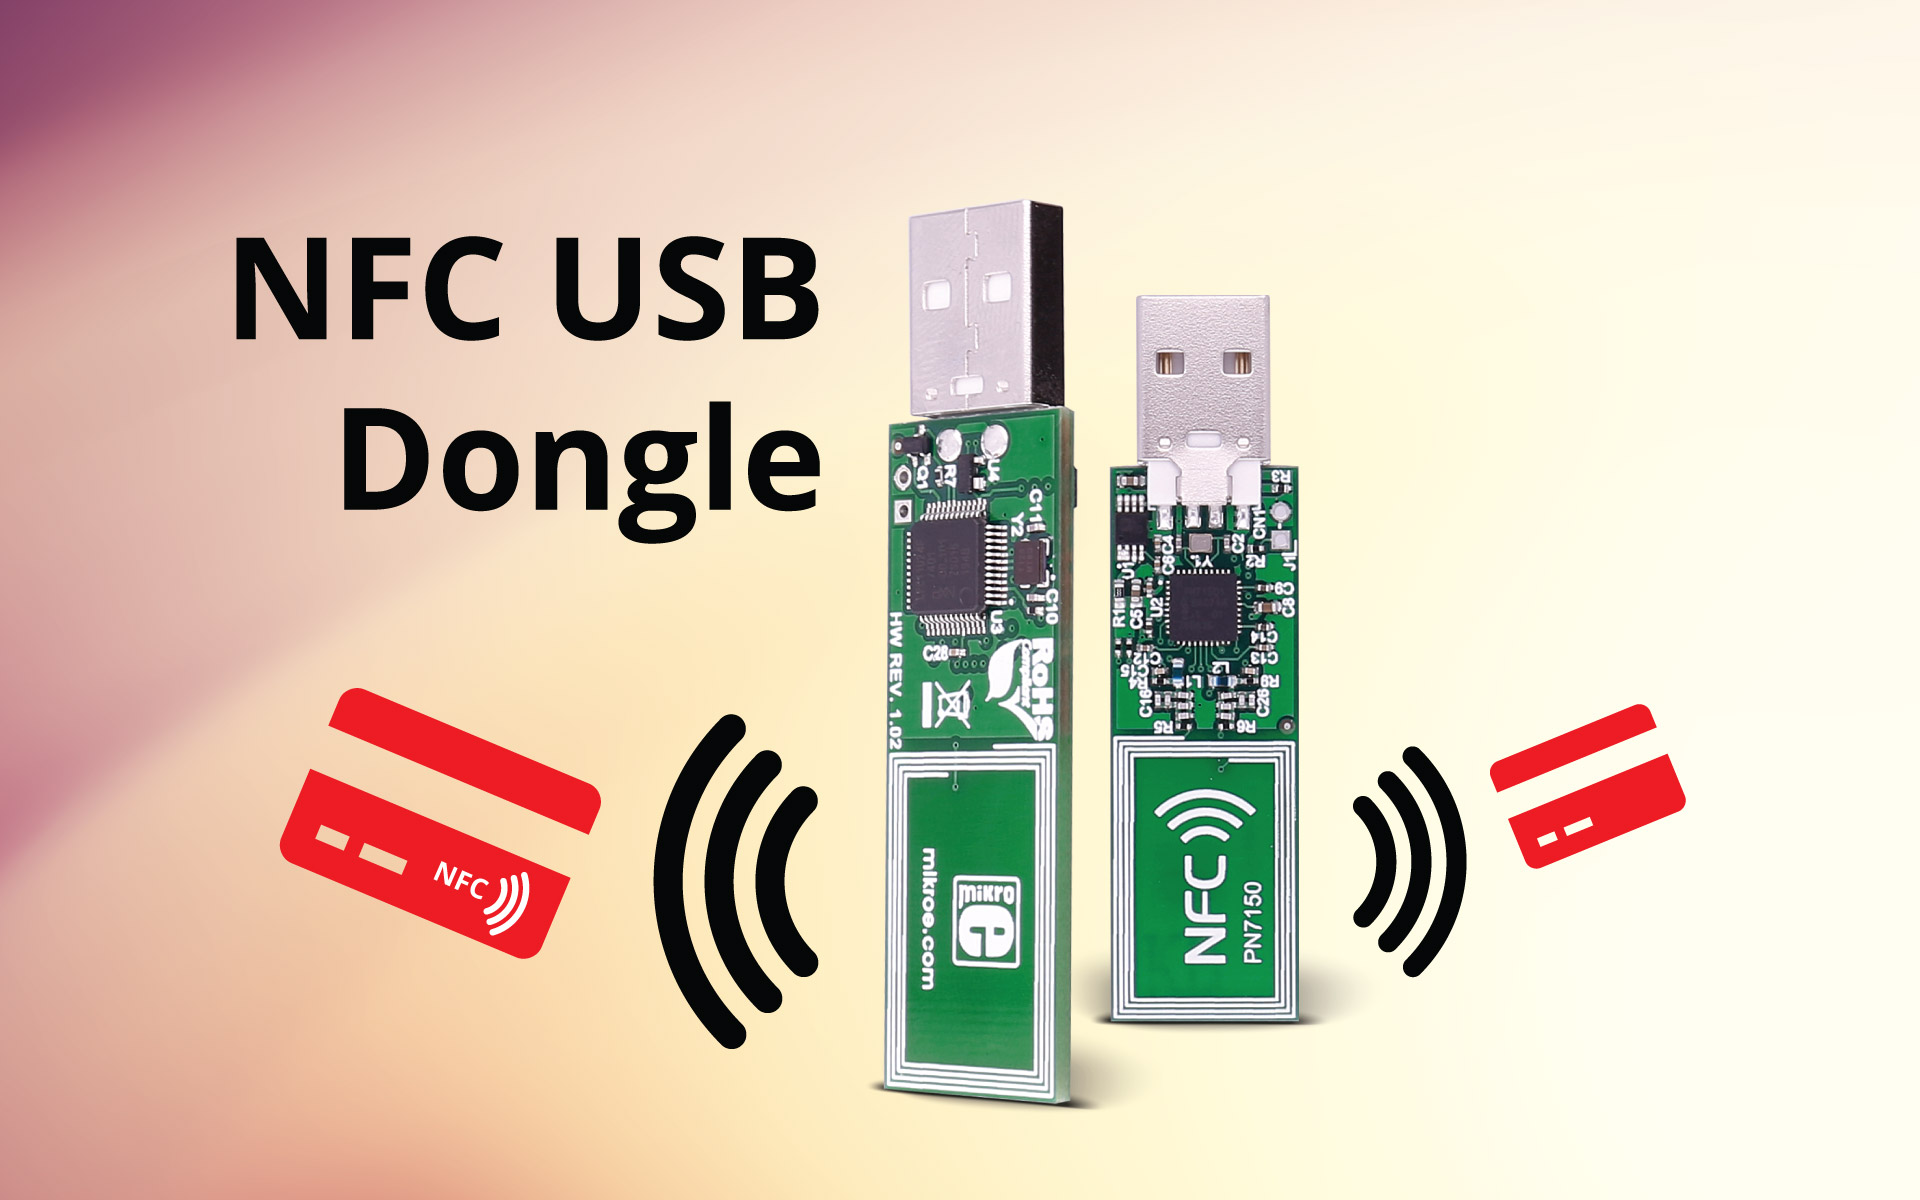 NFC USB Dongle - supports all NFC Forum modes